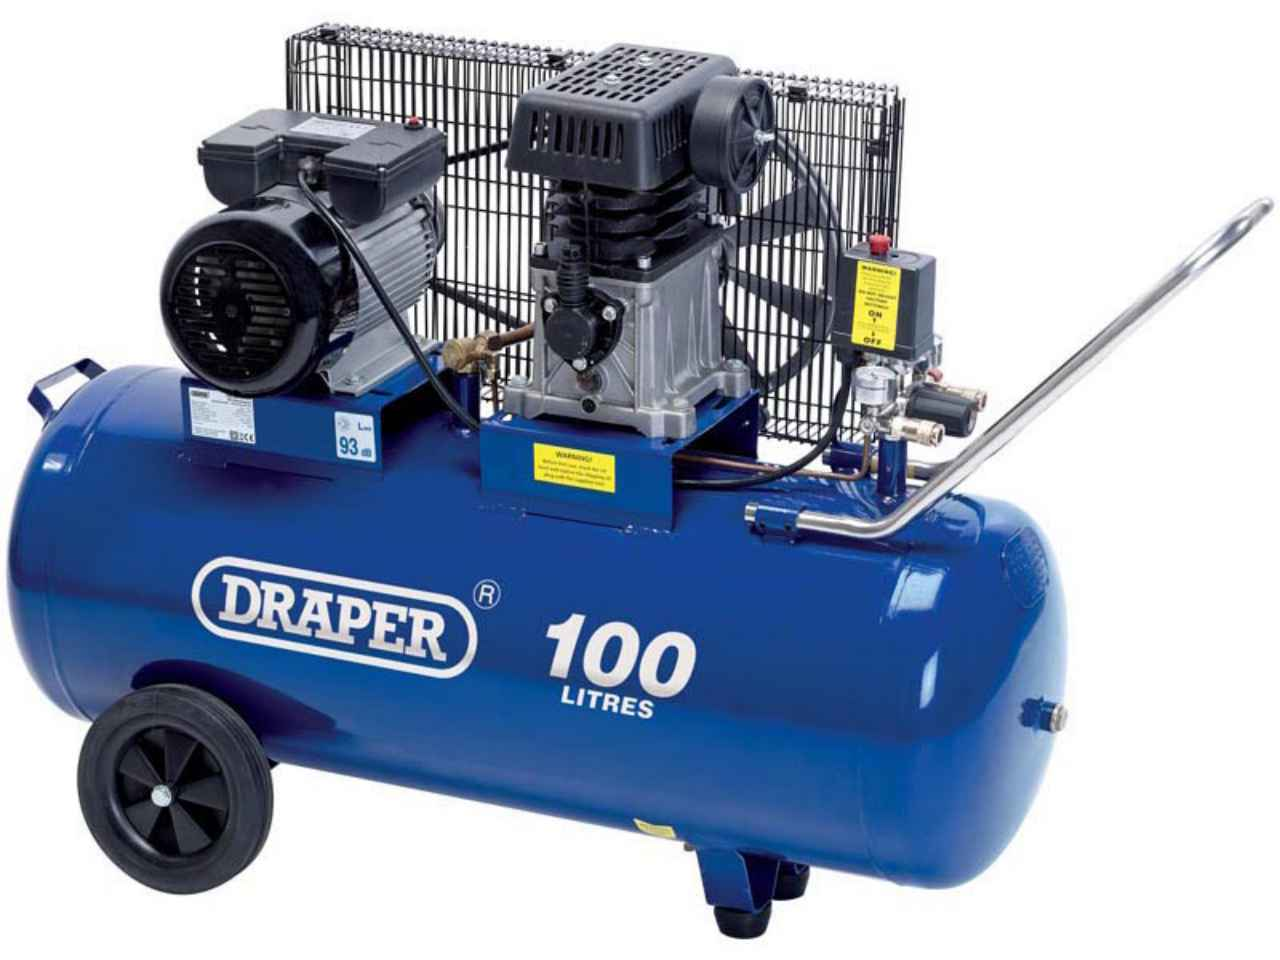 draper da100 330 100l 230v 3hp belt driven air compressor. Black Bedroom Furniture Sets. Home Design Ideas